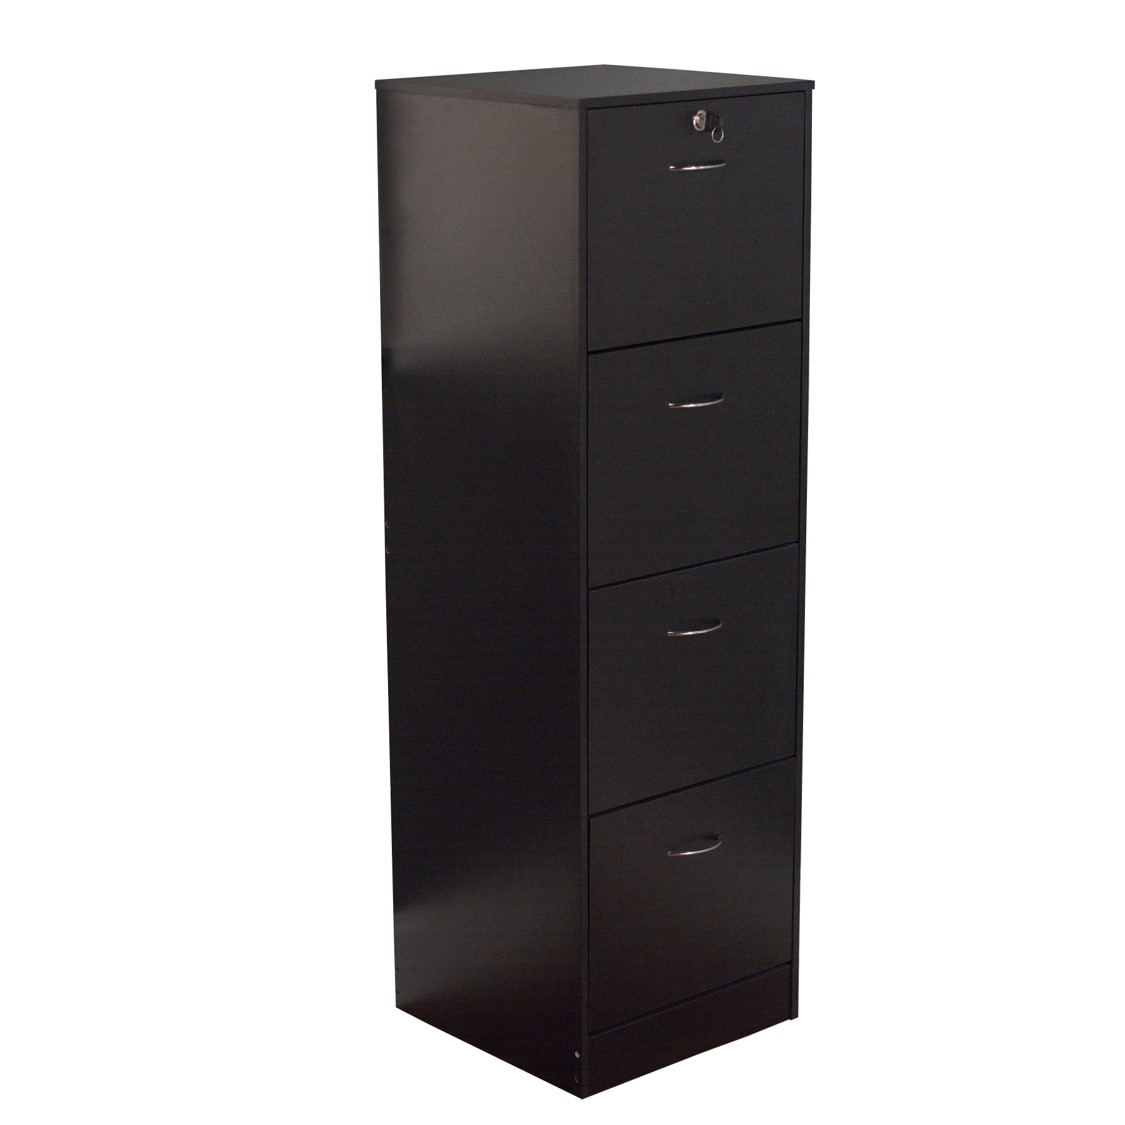 wilson 4 drawer wood vertical lockable filing cabinet black rh walmart com